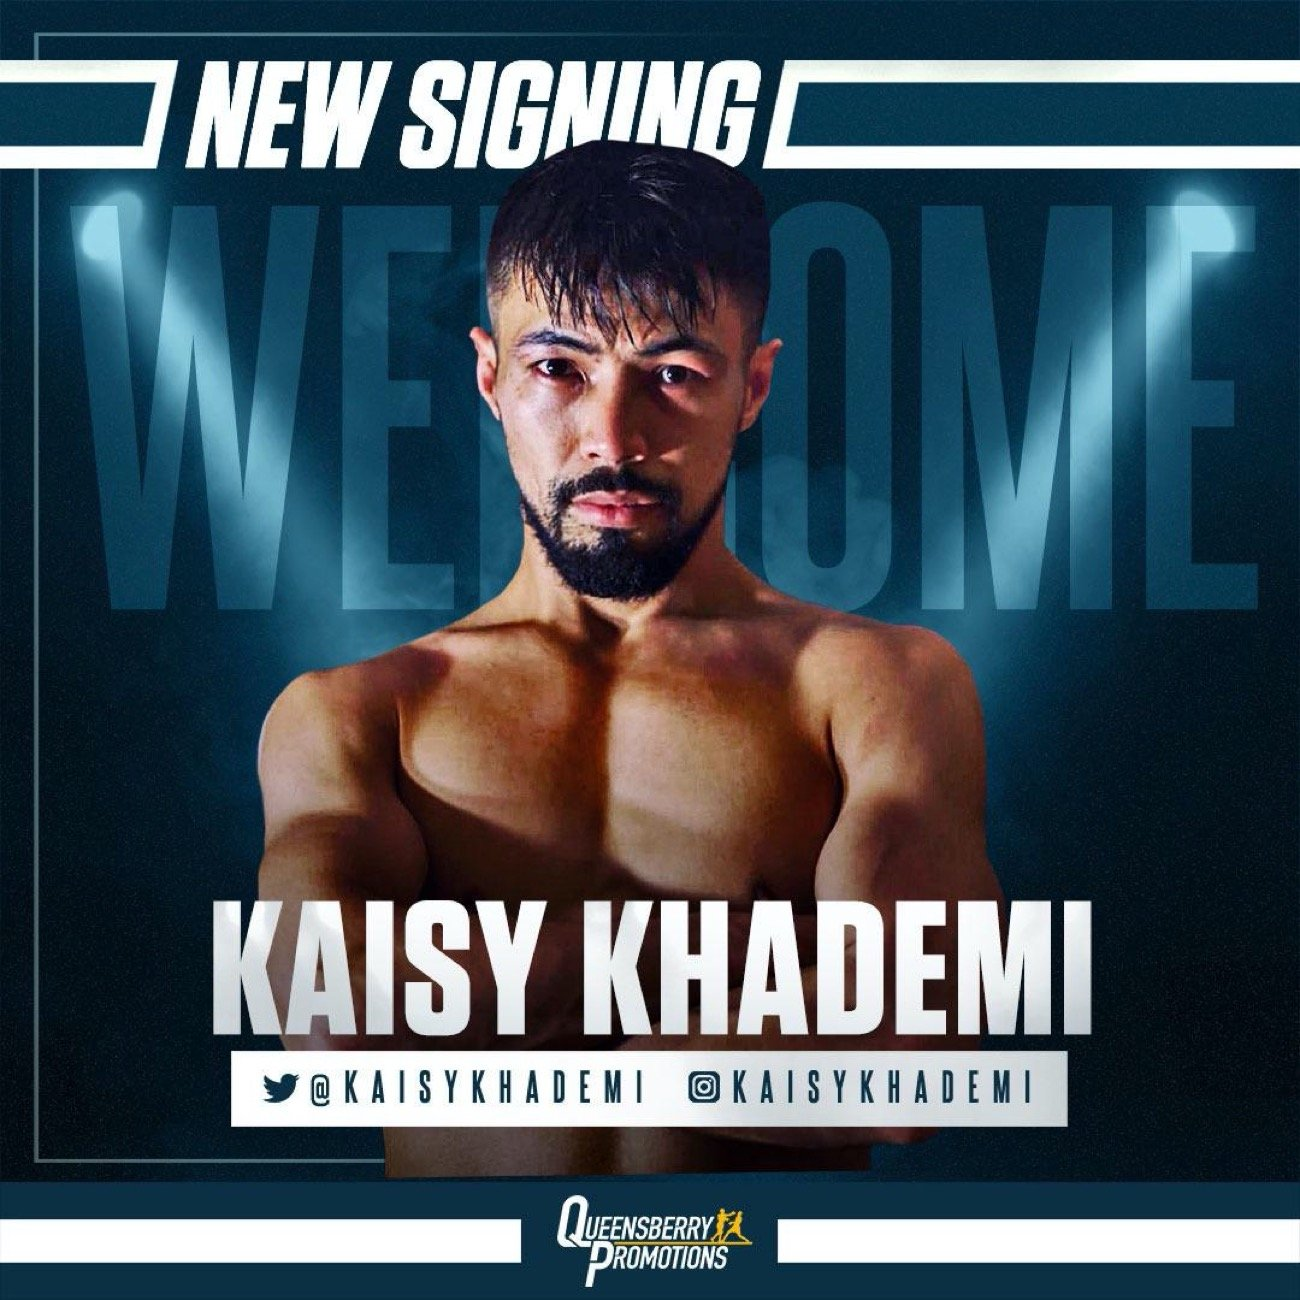 Kaisy Khademi - THE WBO EUROPEAN super flyweight champion Kaisy Khademi has teamed up with Frank Warren and will now fight on the Queensberry Promotions platform.